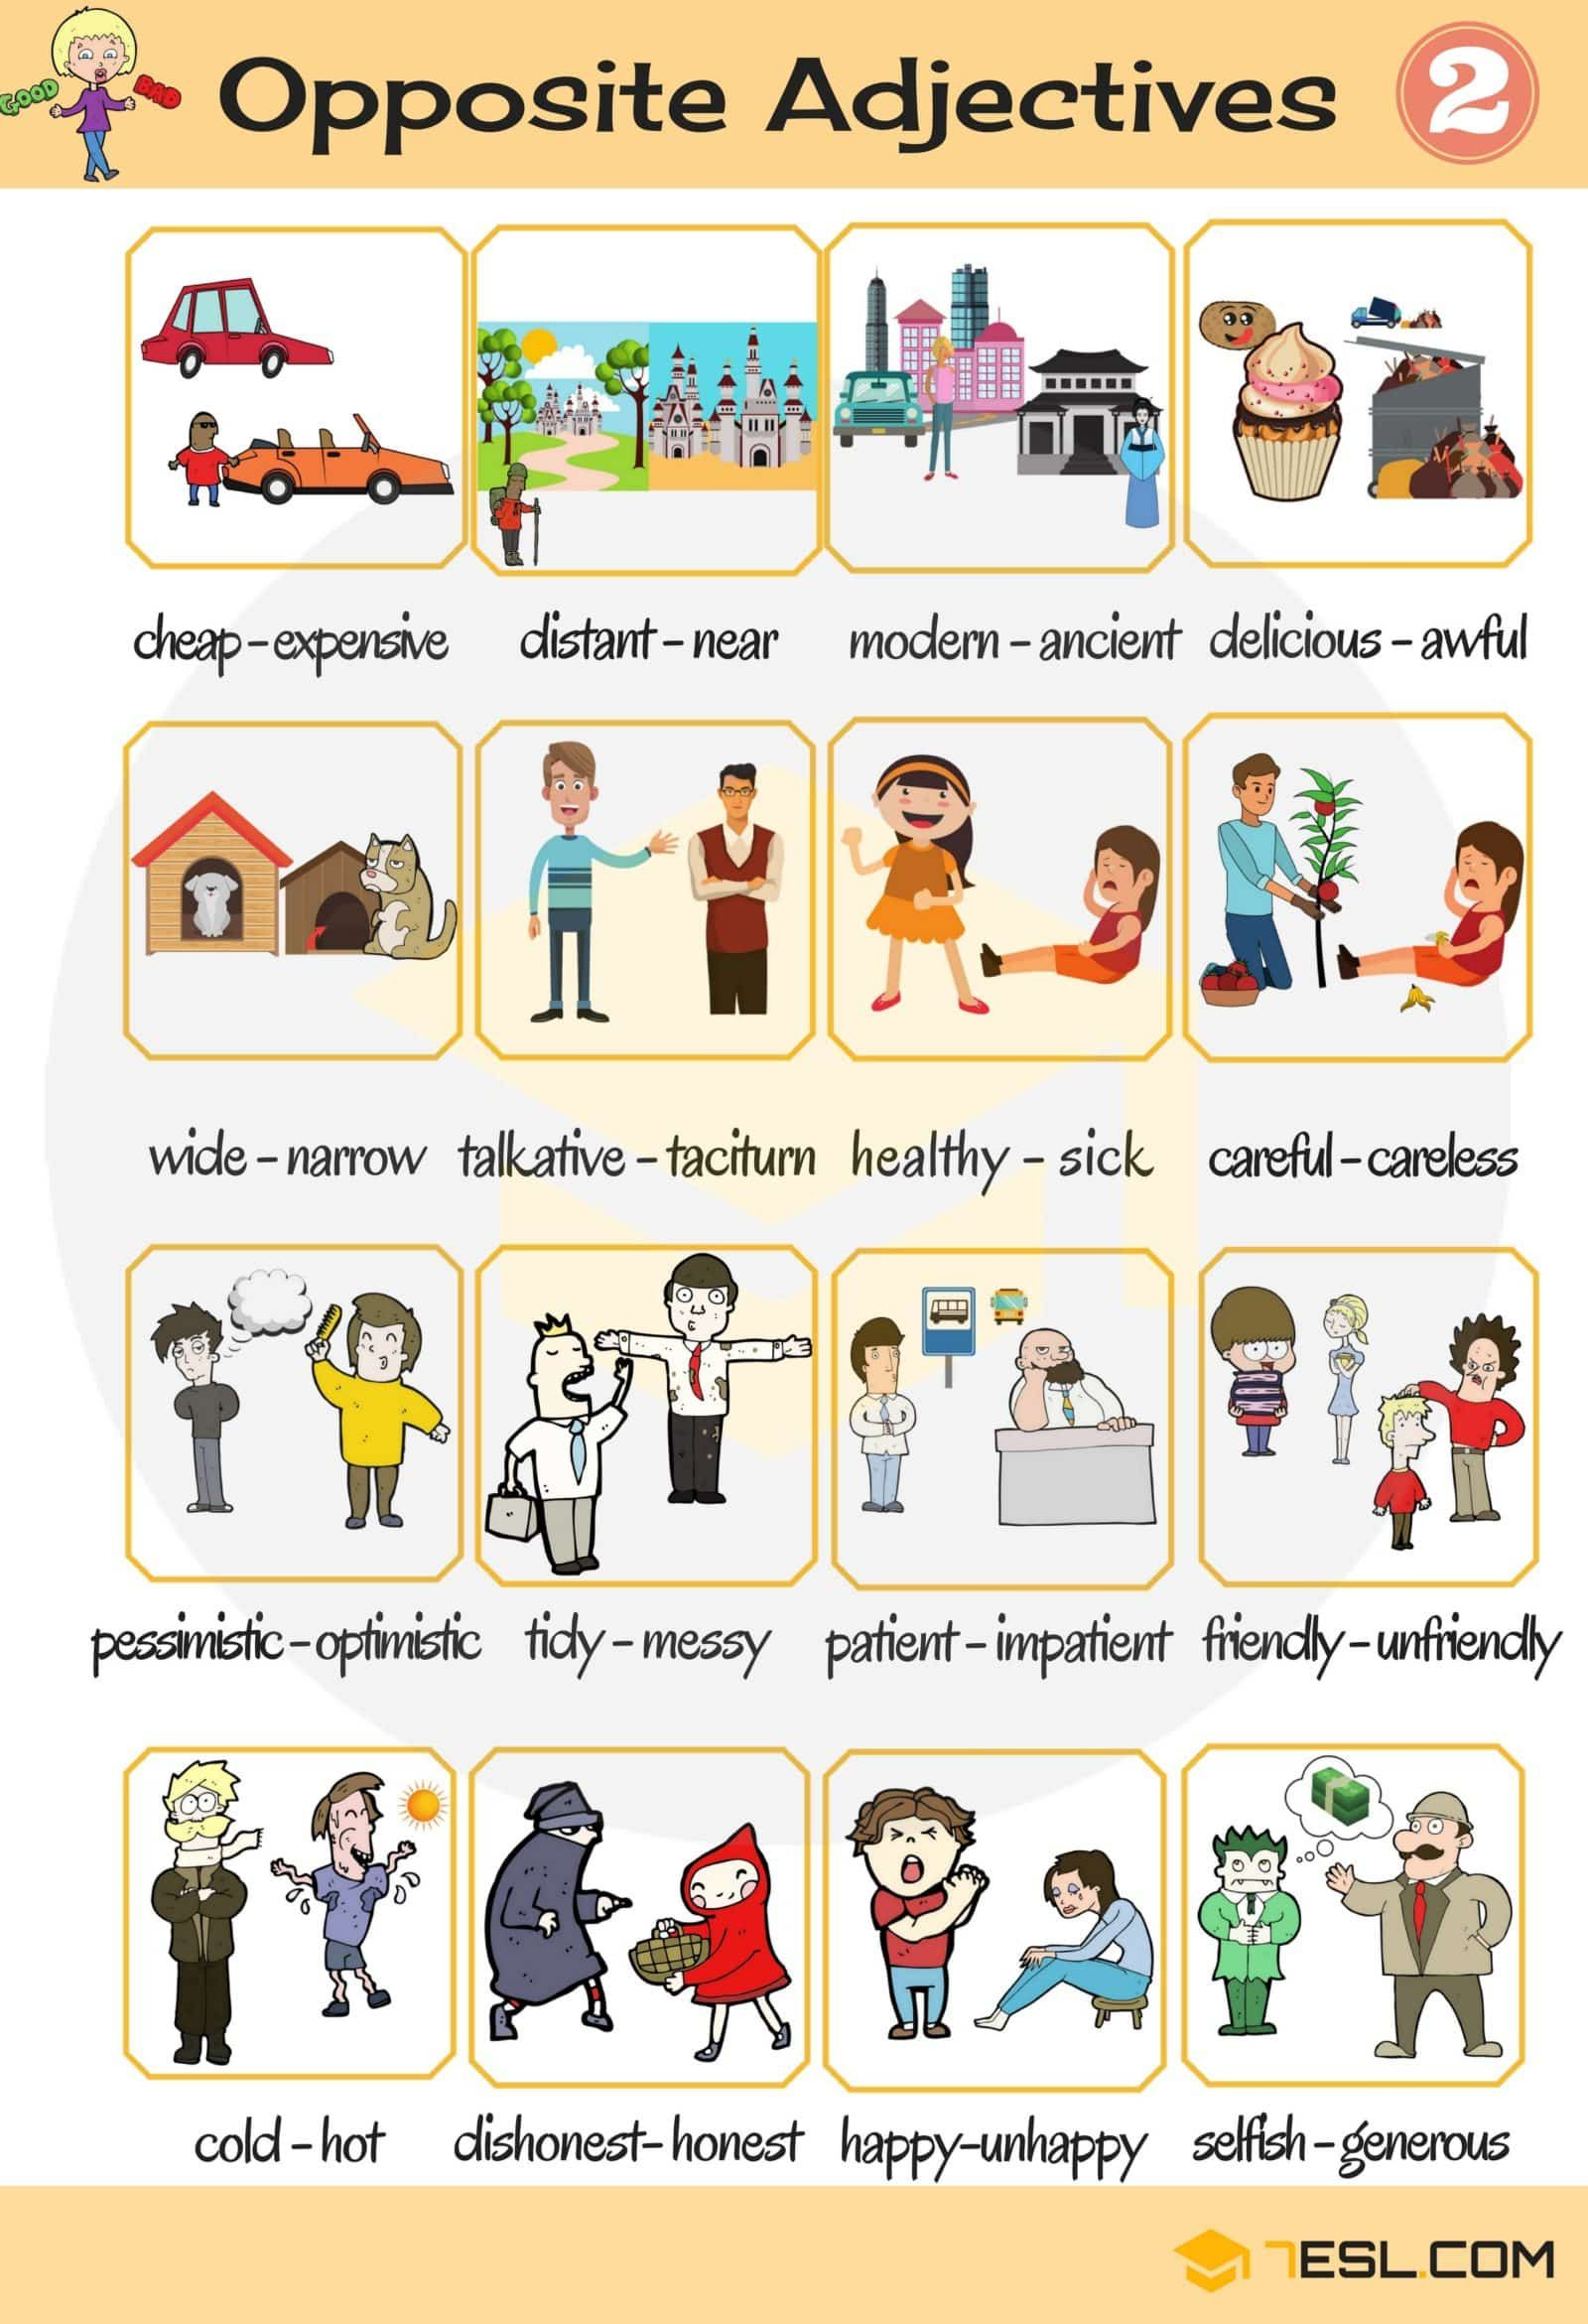 List Of Opposite Adjectives In English With Images